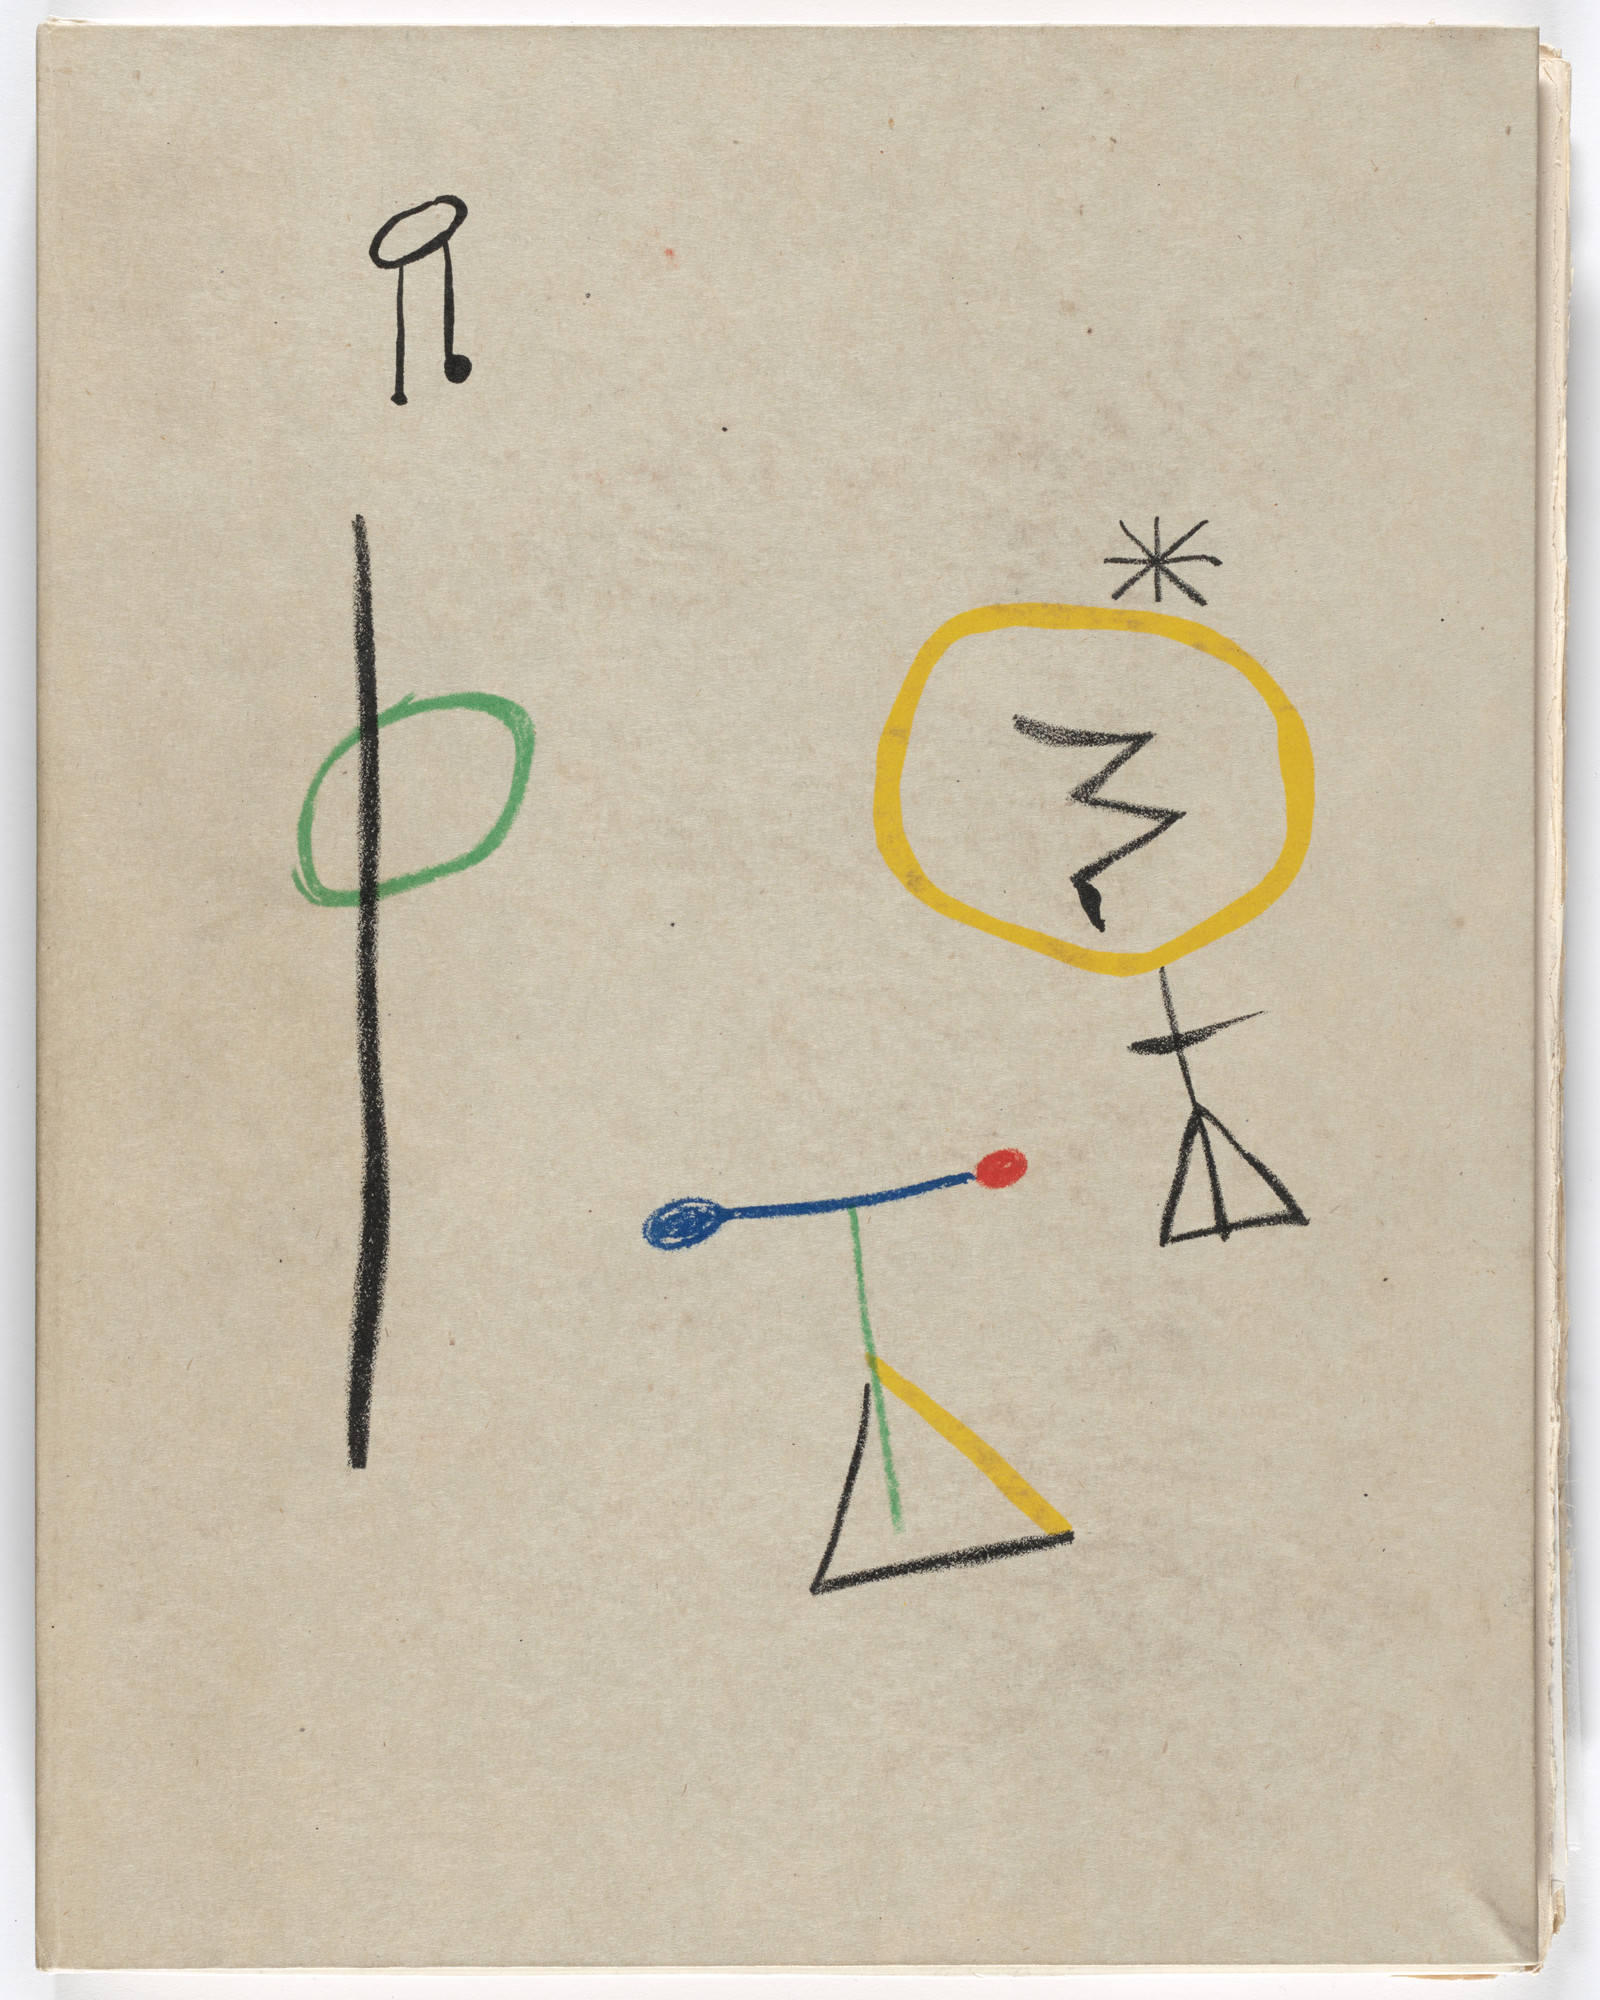 Joan Miró. Publisher's slipcase from Parler seul (Speaking Alone). 1948–50, published 1950